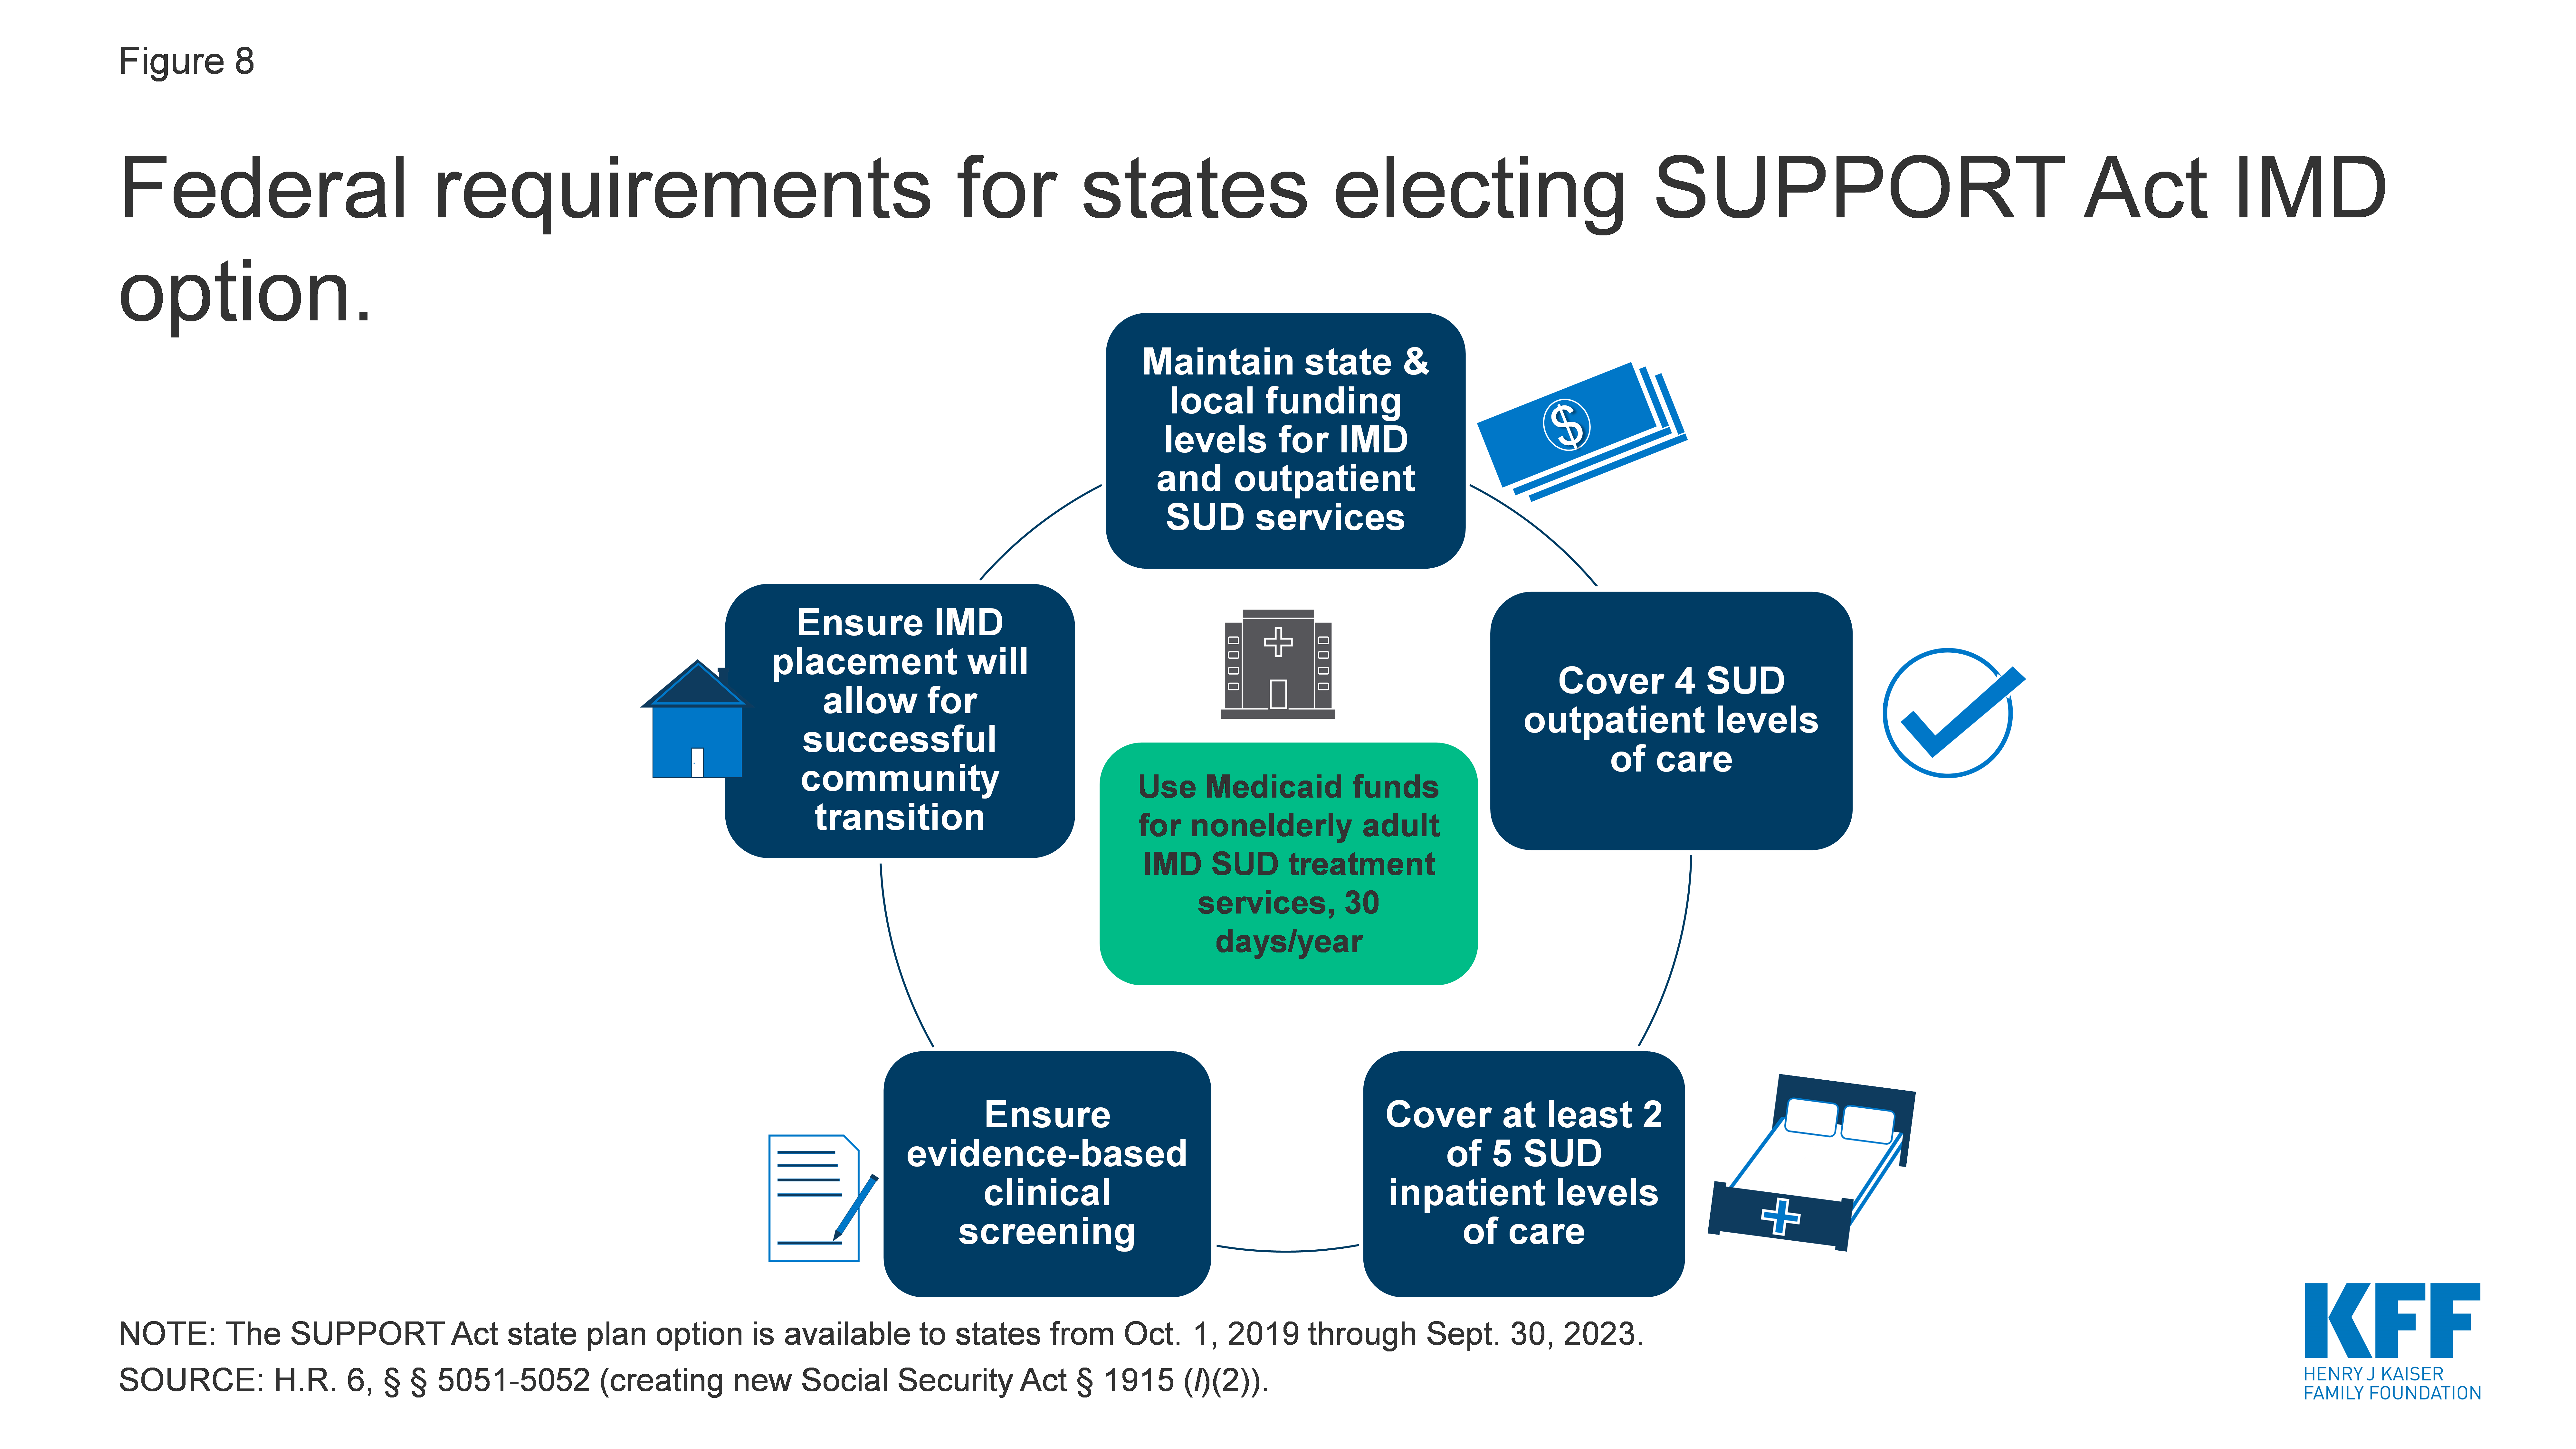 Federal requirements for states electing SUPPORT Act IMD option